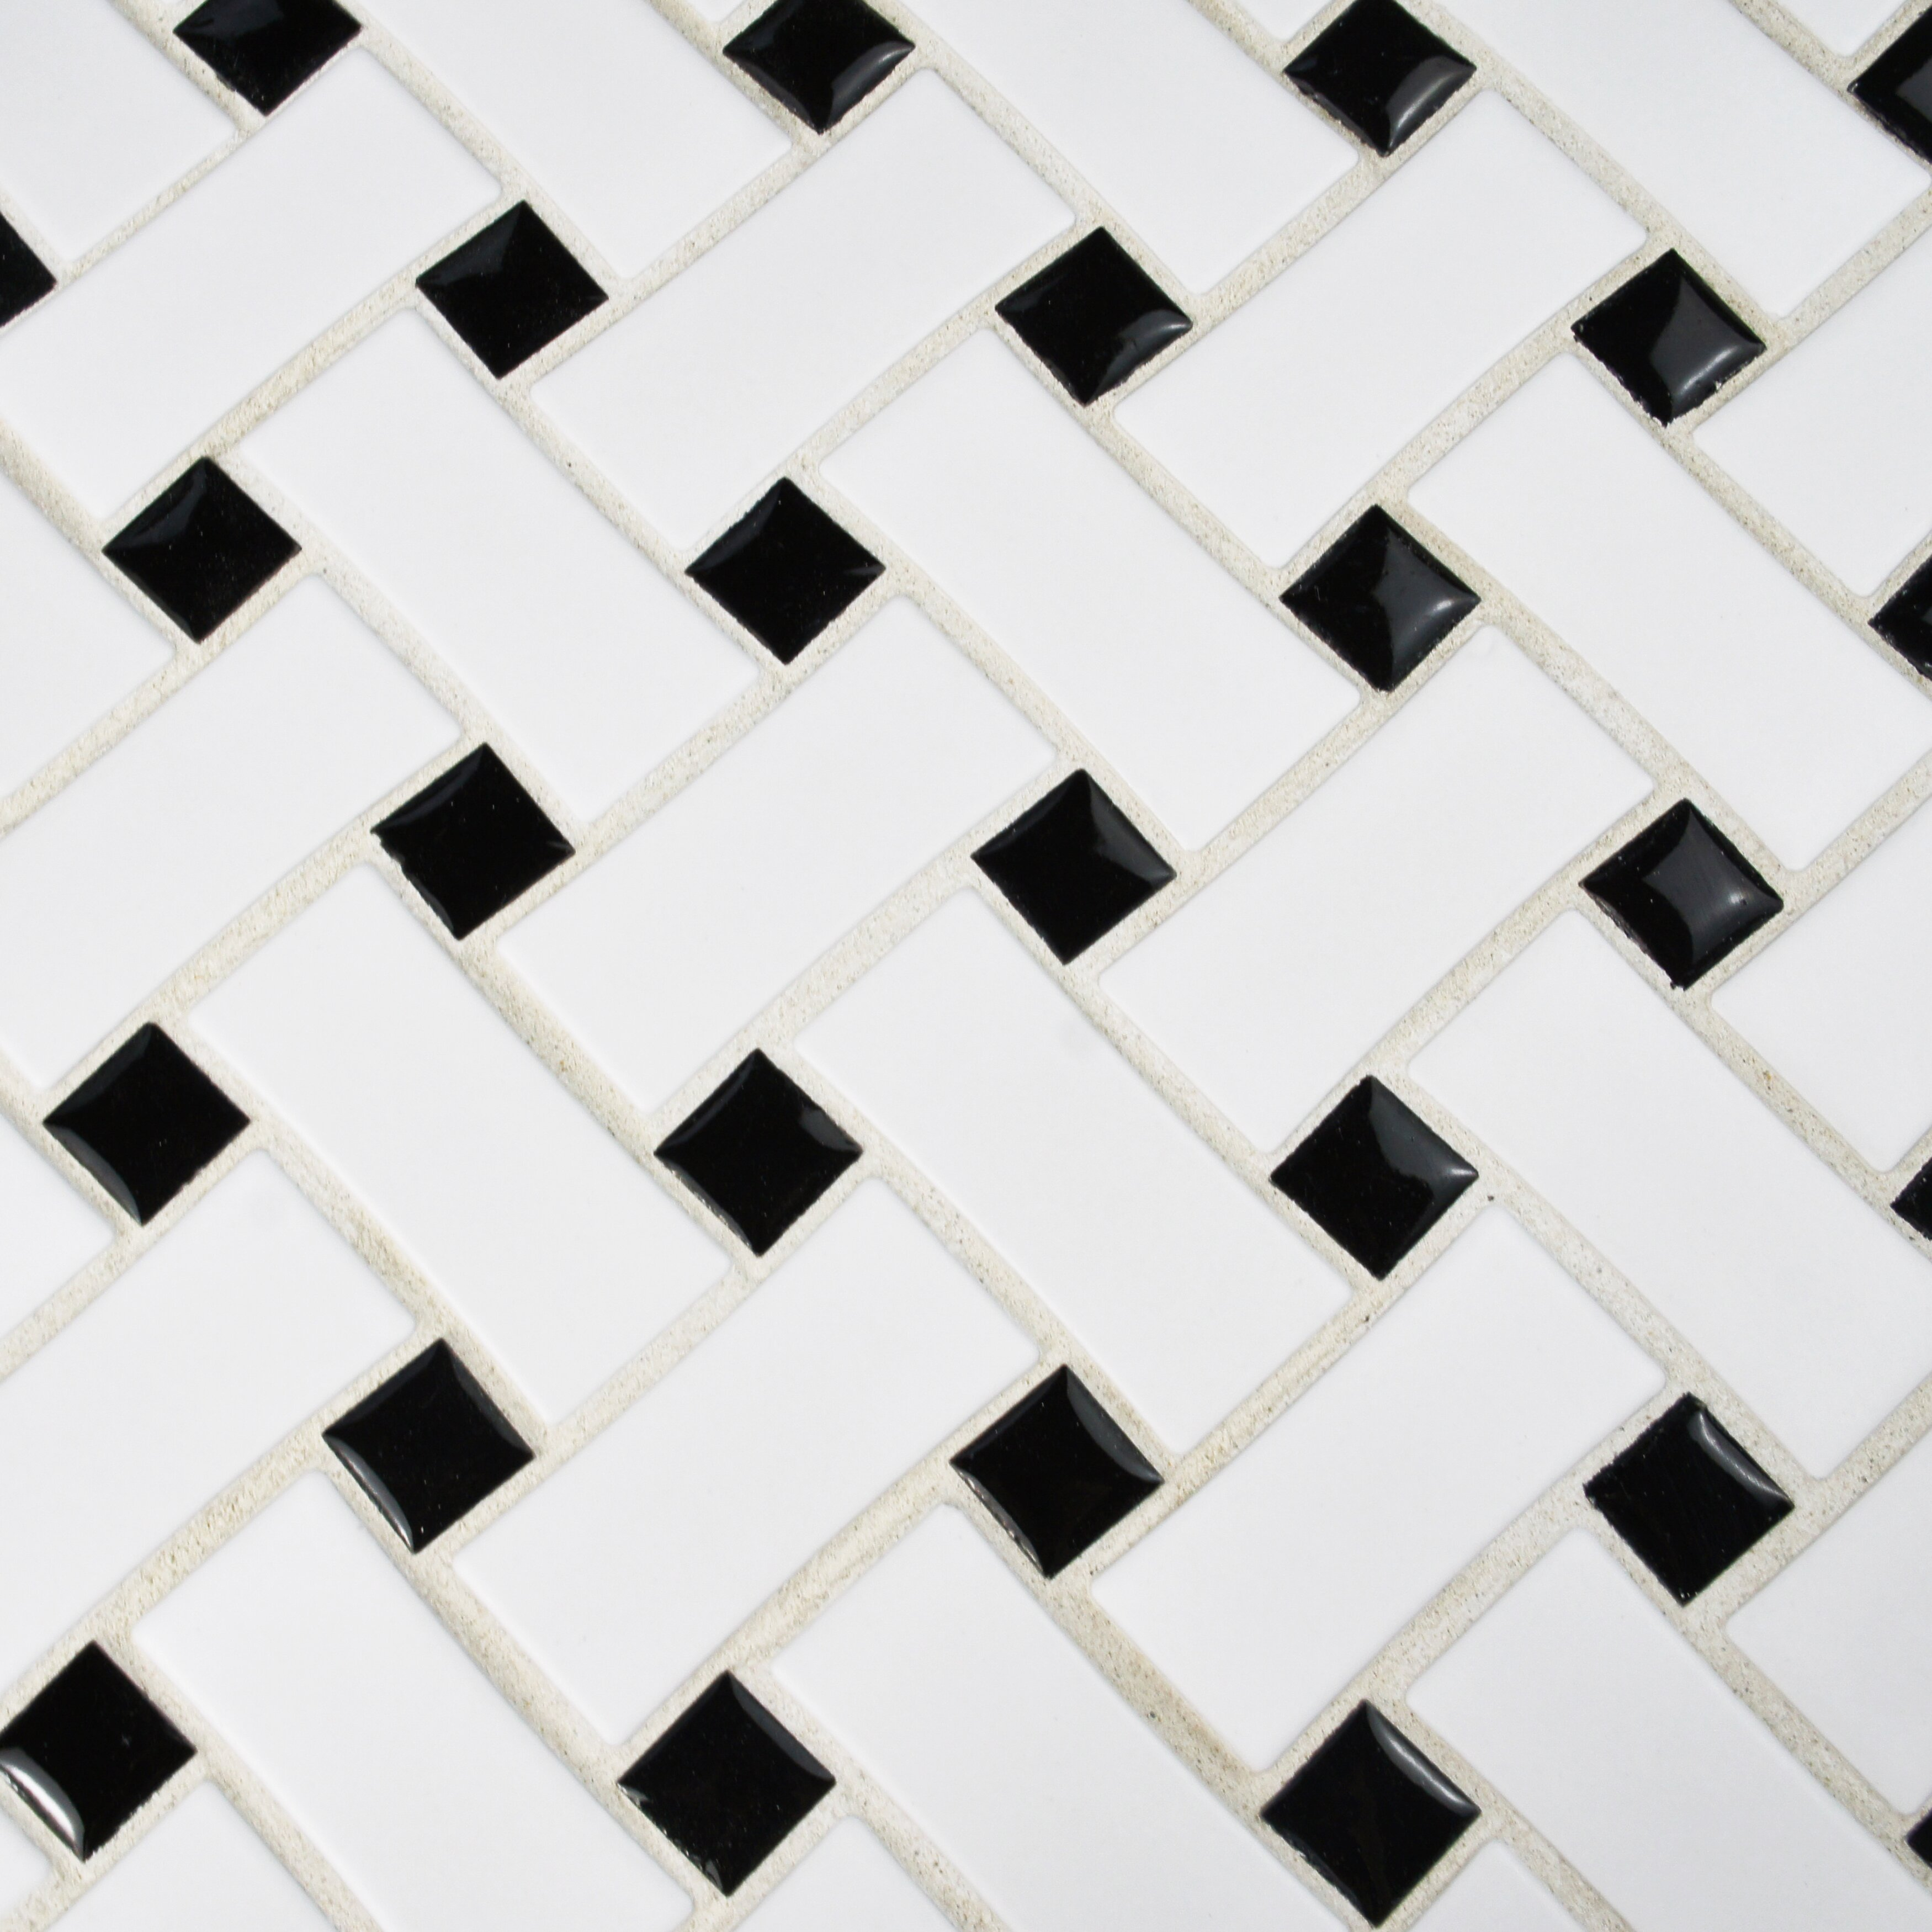 EliteTile Retro Basket Weave 105quot x 105quot Porcelain  : EliteTile Retro Basket Weave 105 x 105 Porcelain Mosaic Tile in Matte White and Black WFFDXMBWWB from www.wayfair.com size 3500 x 3500 jpeg 1431kB